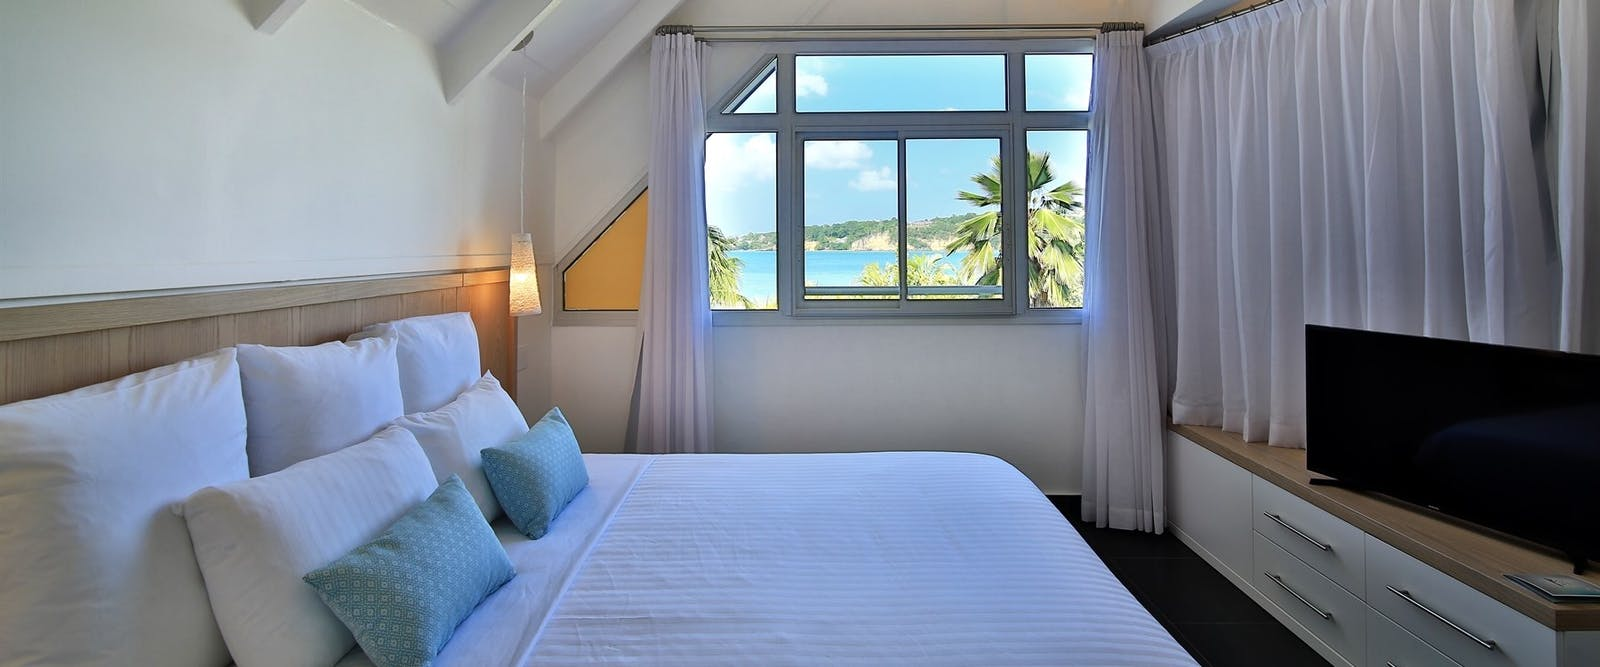 Suite Bedroom At Mahogany Hotel Residencia & Spa, Guadeloupe